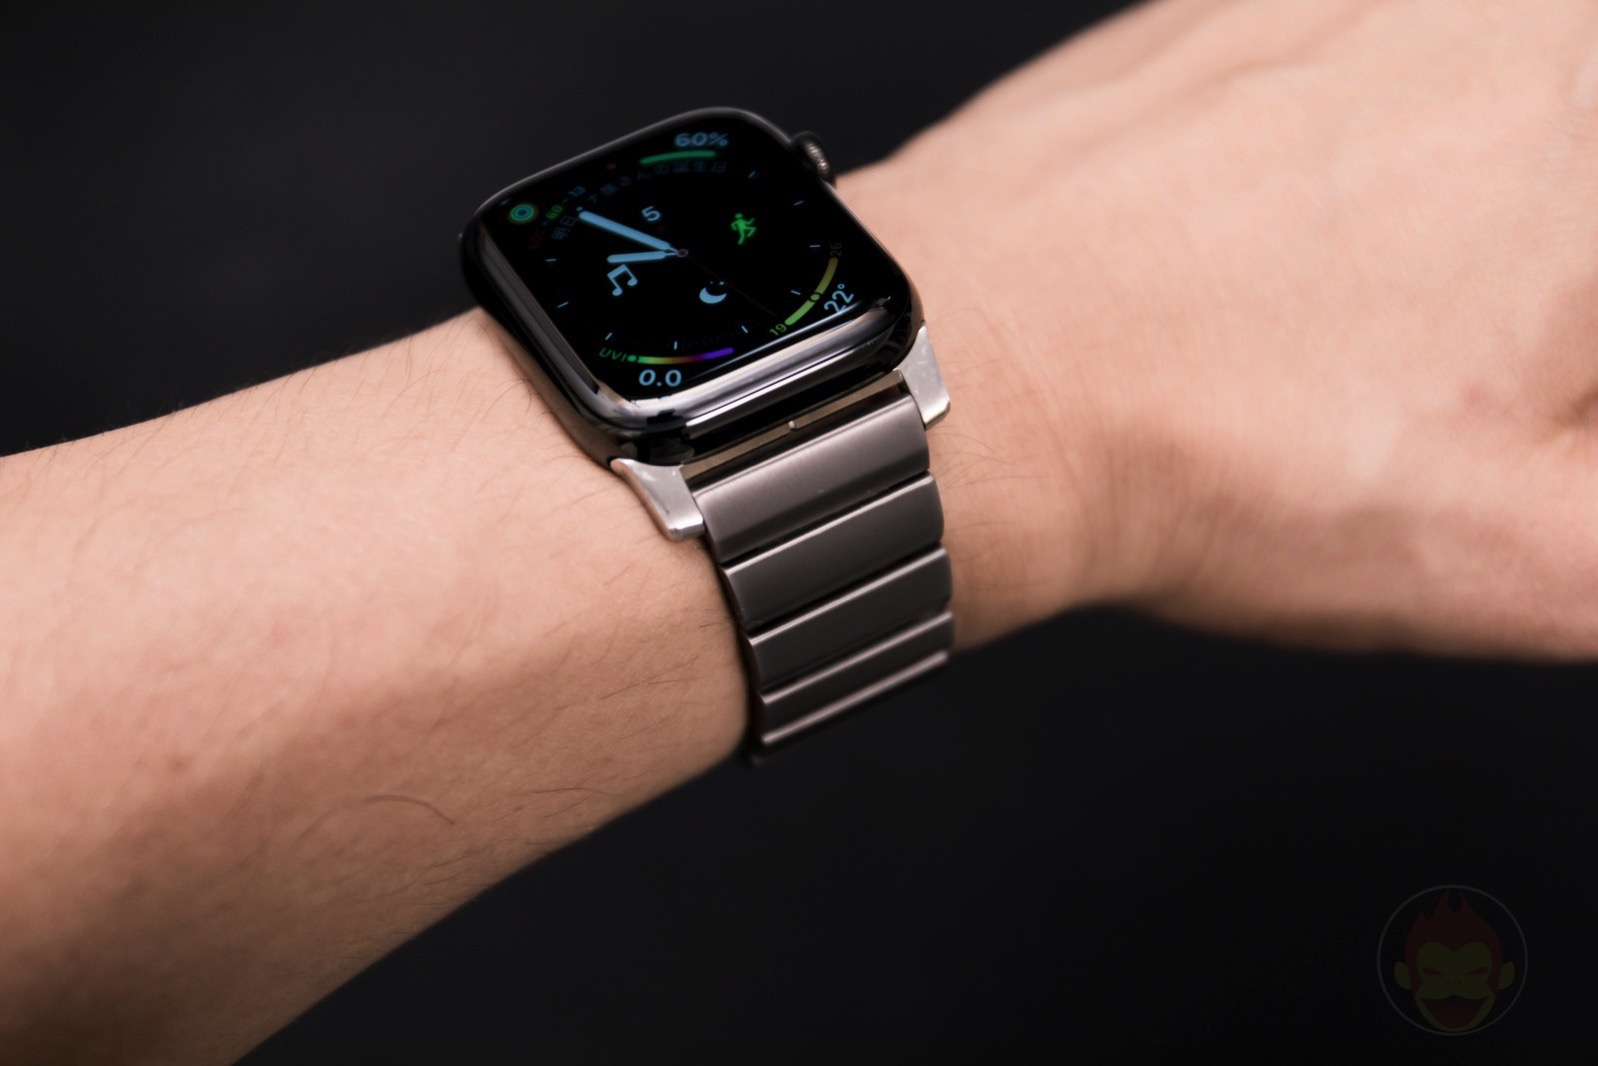 Apple-Watch-Nomad-Titanium-Band-Review-32.jpg